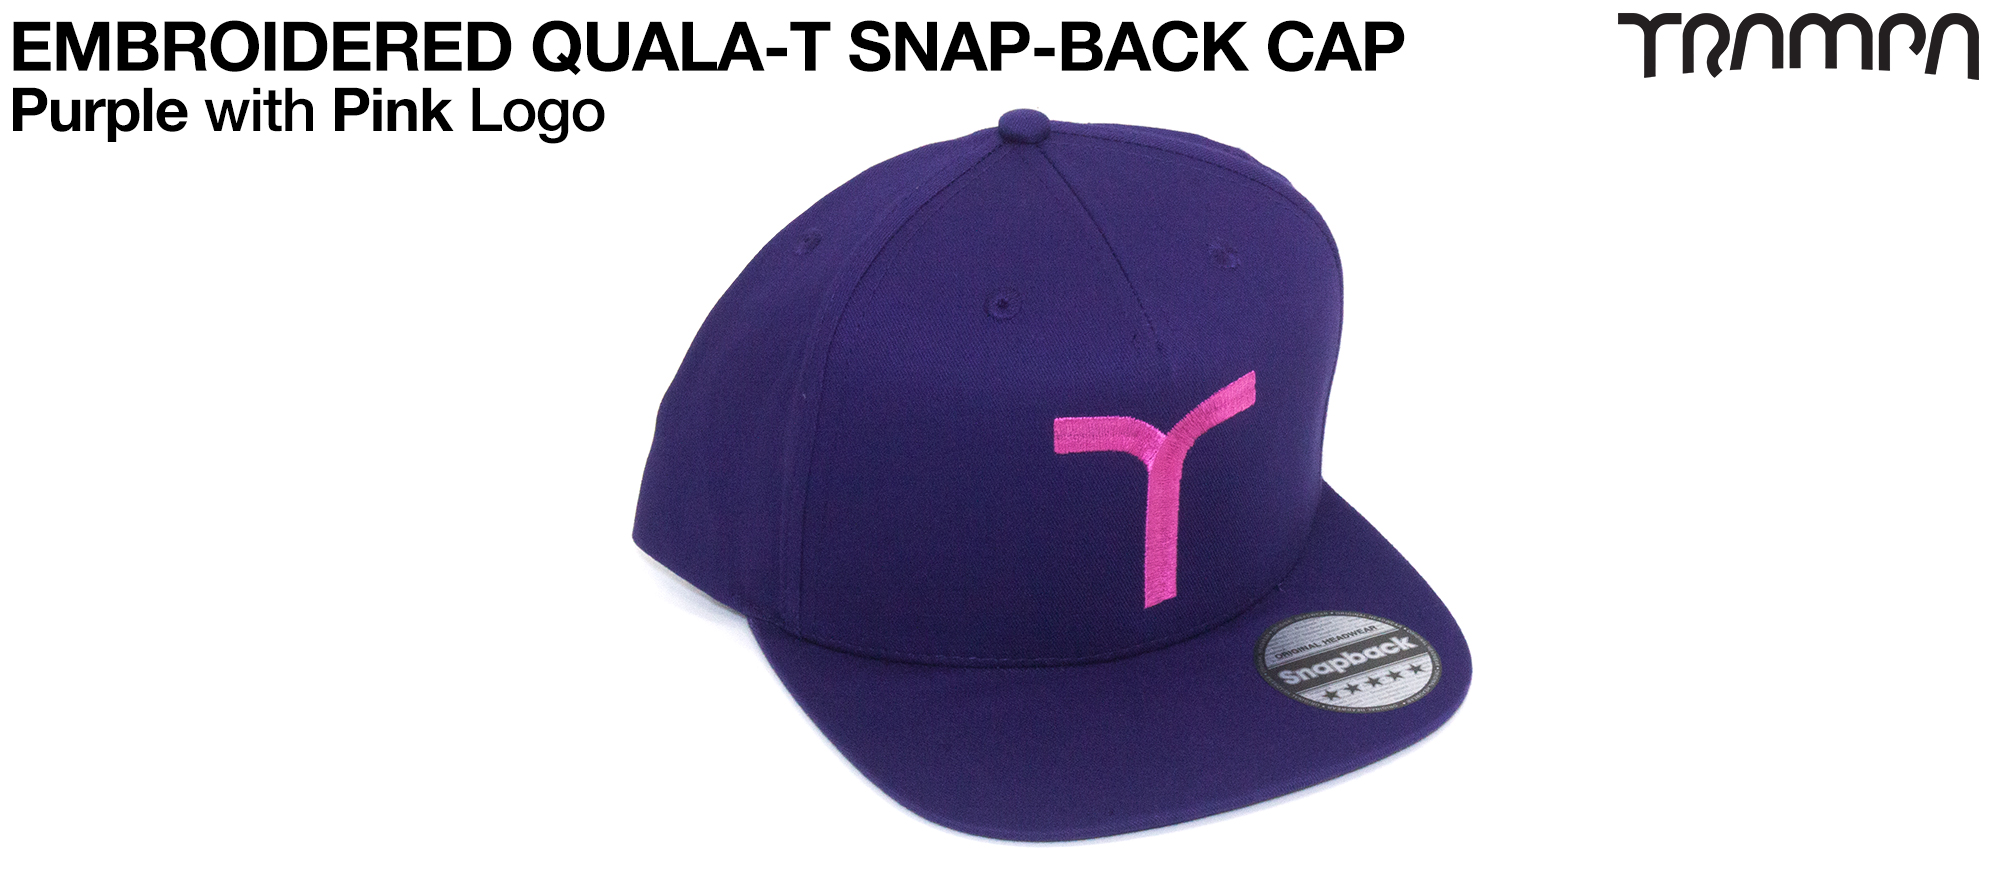 PURPLE SNAPBACK Cap with PINK QUALA-T logo embroidered